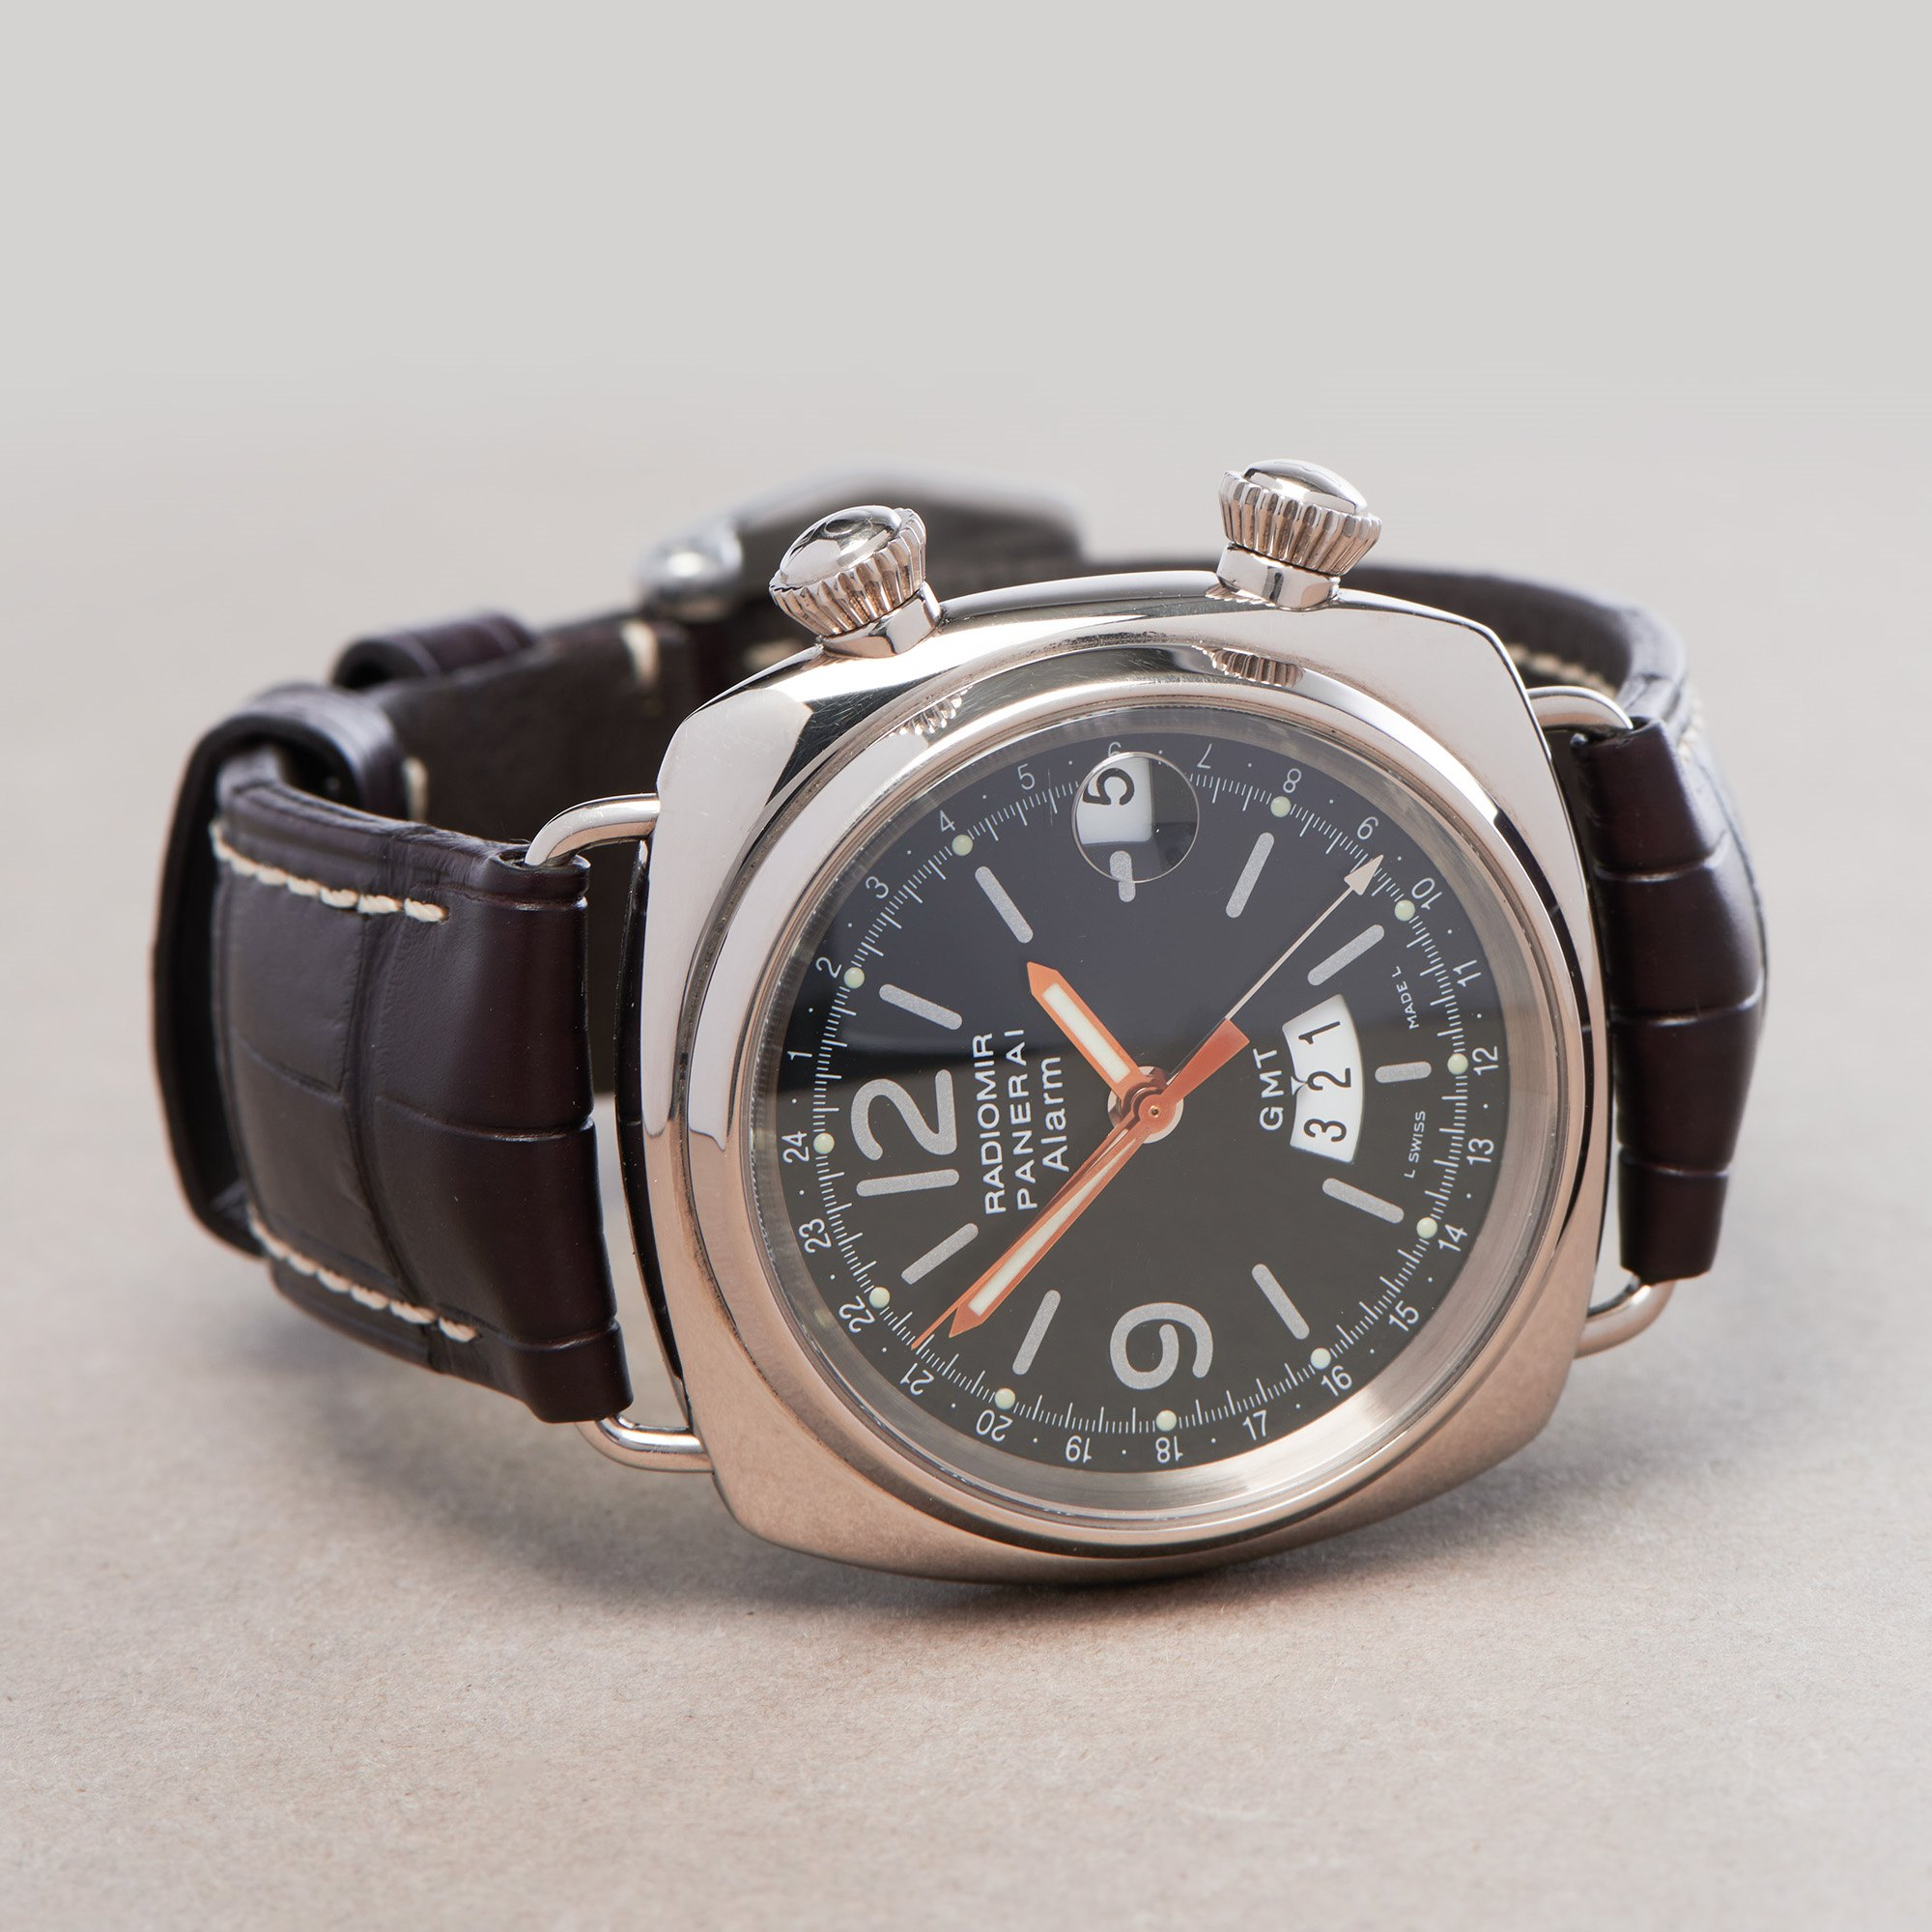 Panerai Radiomir Limited Edition of 60 Pieces 18K White Gold - PAM00046 White Gold PAM00046